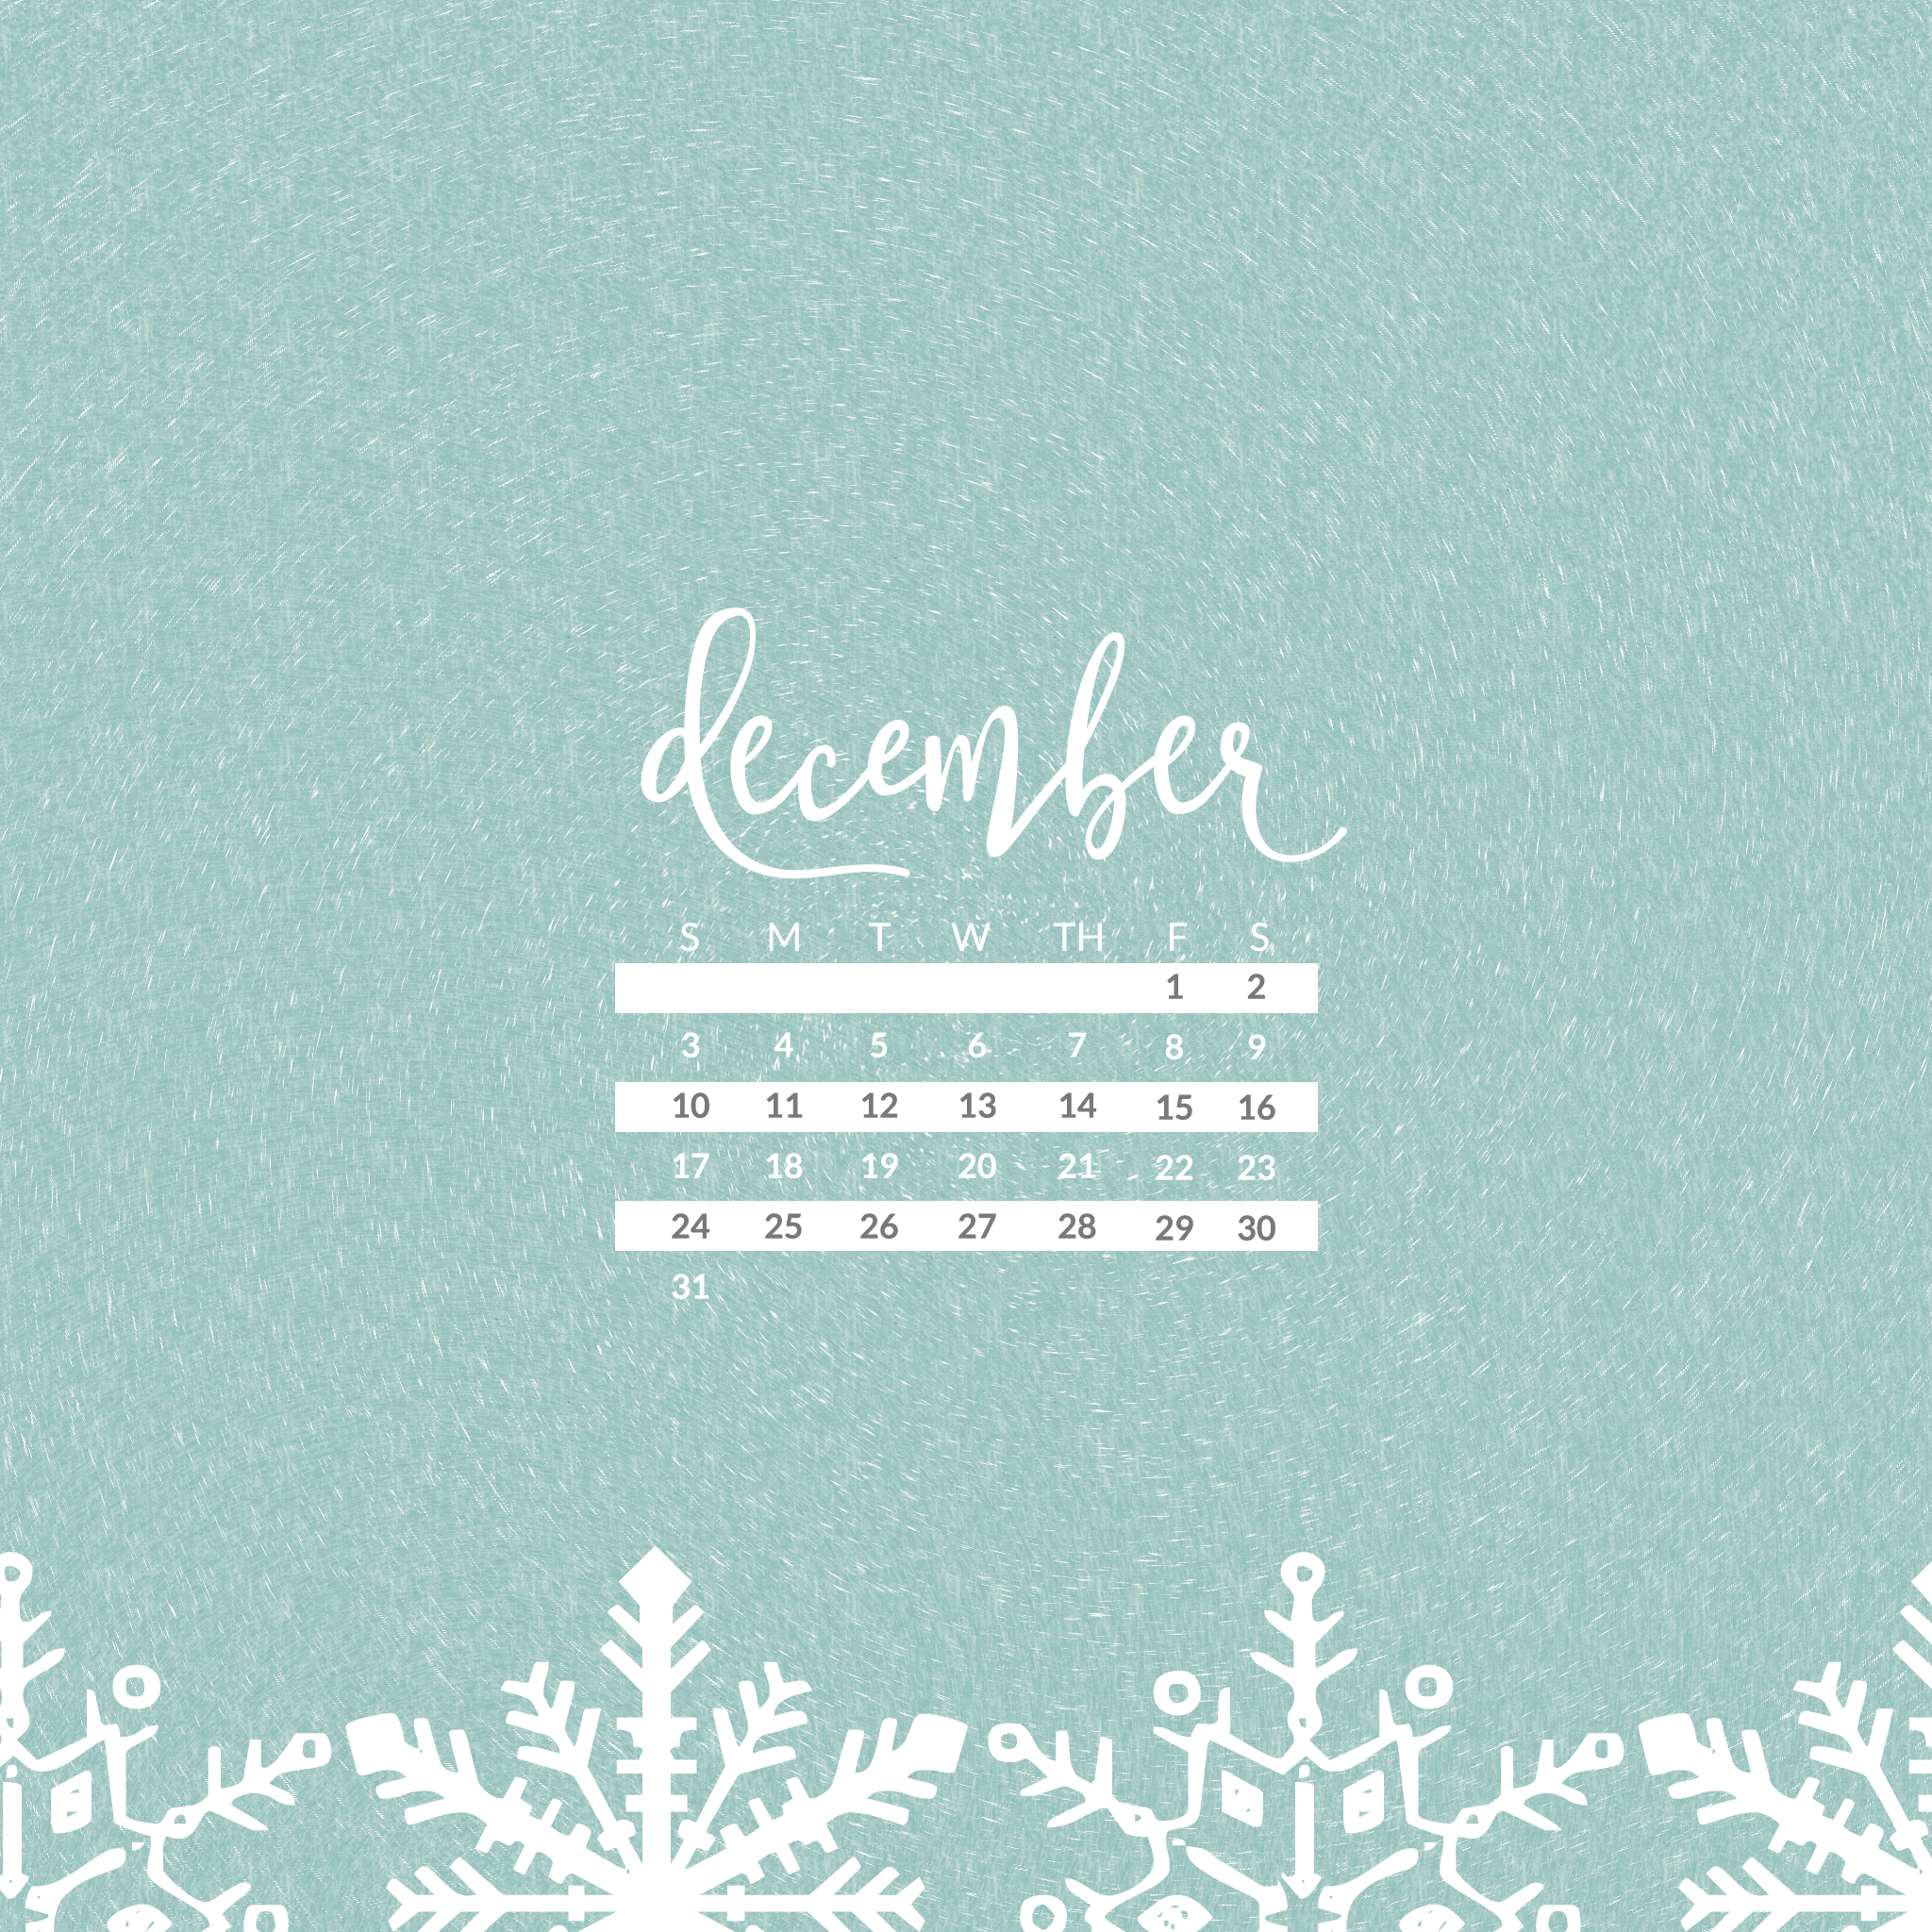 December 2017 Calendar Wallpaper - For Desktop & Mobile ...